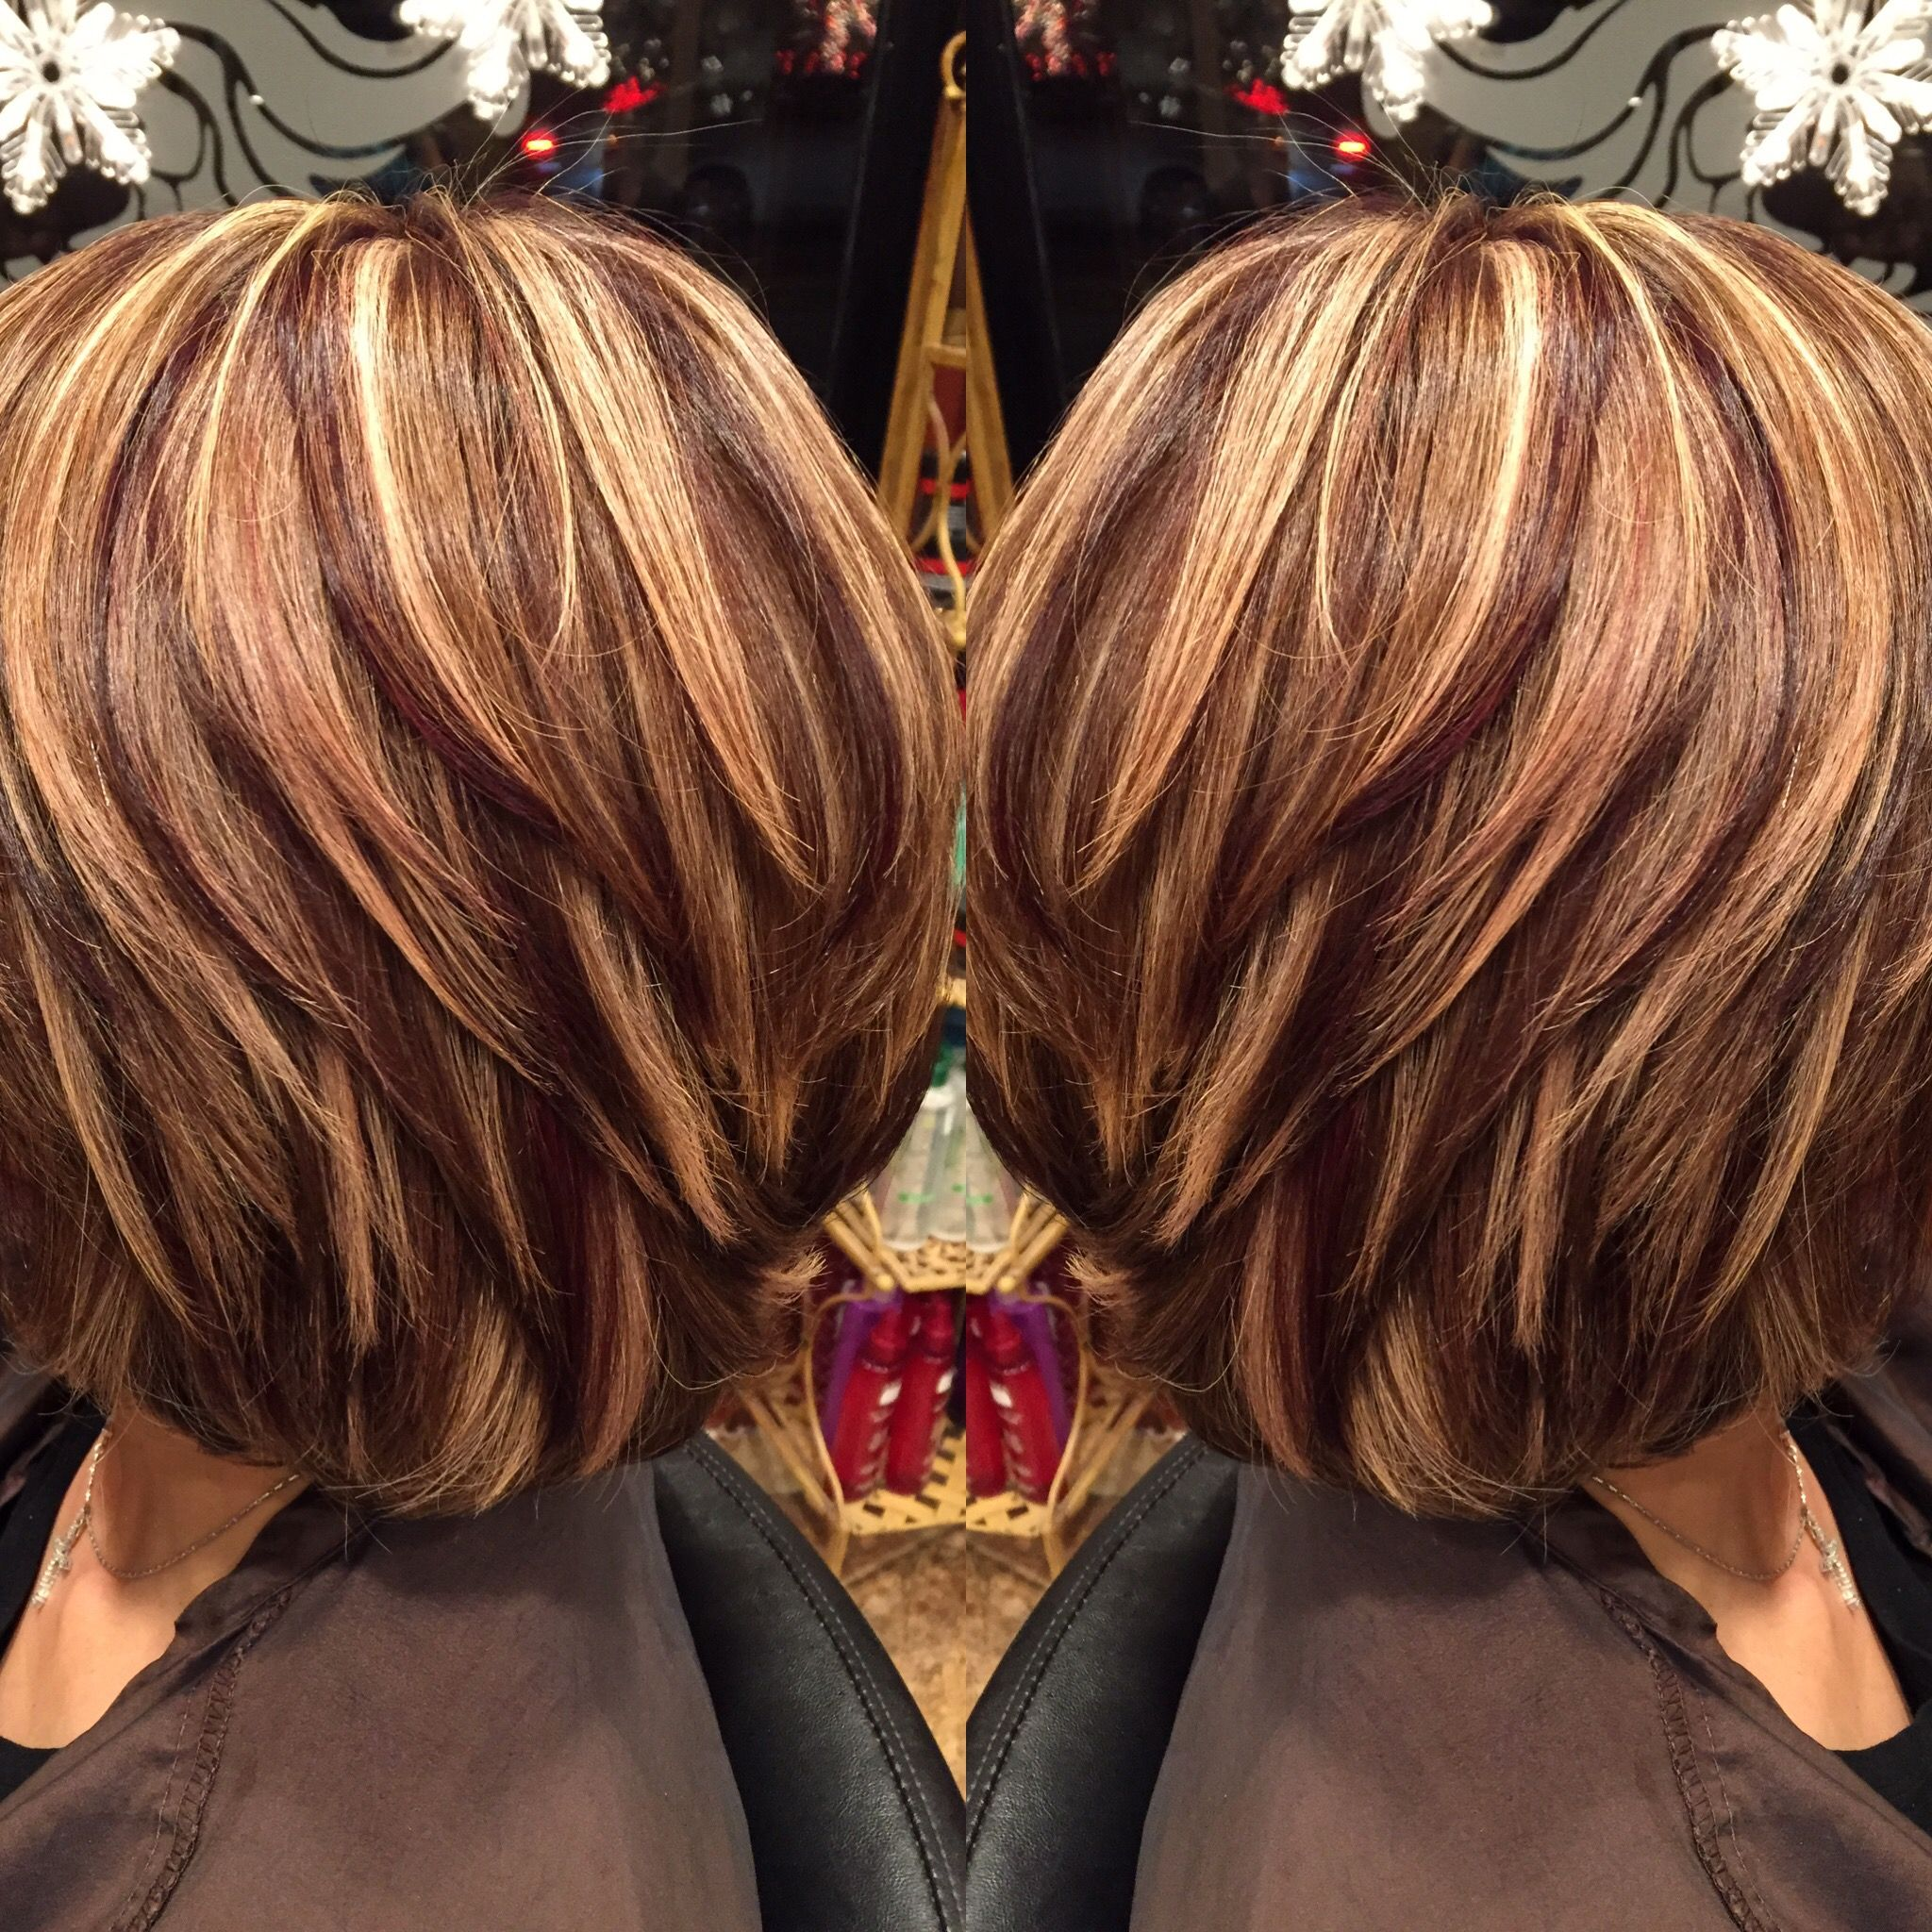 Highlights and lowlights josephashleysalon hair pinterest